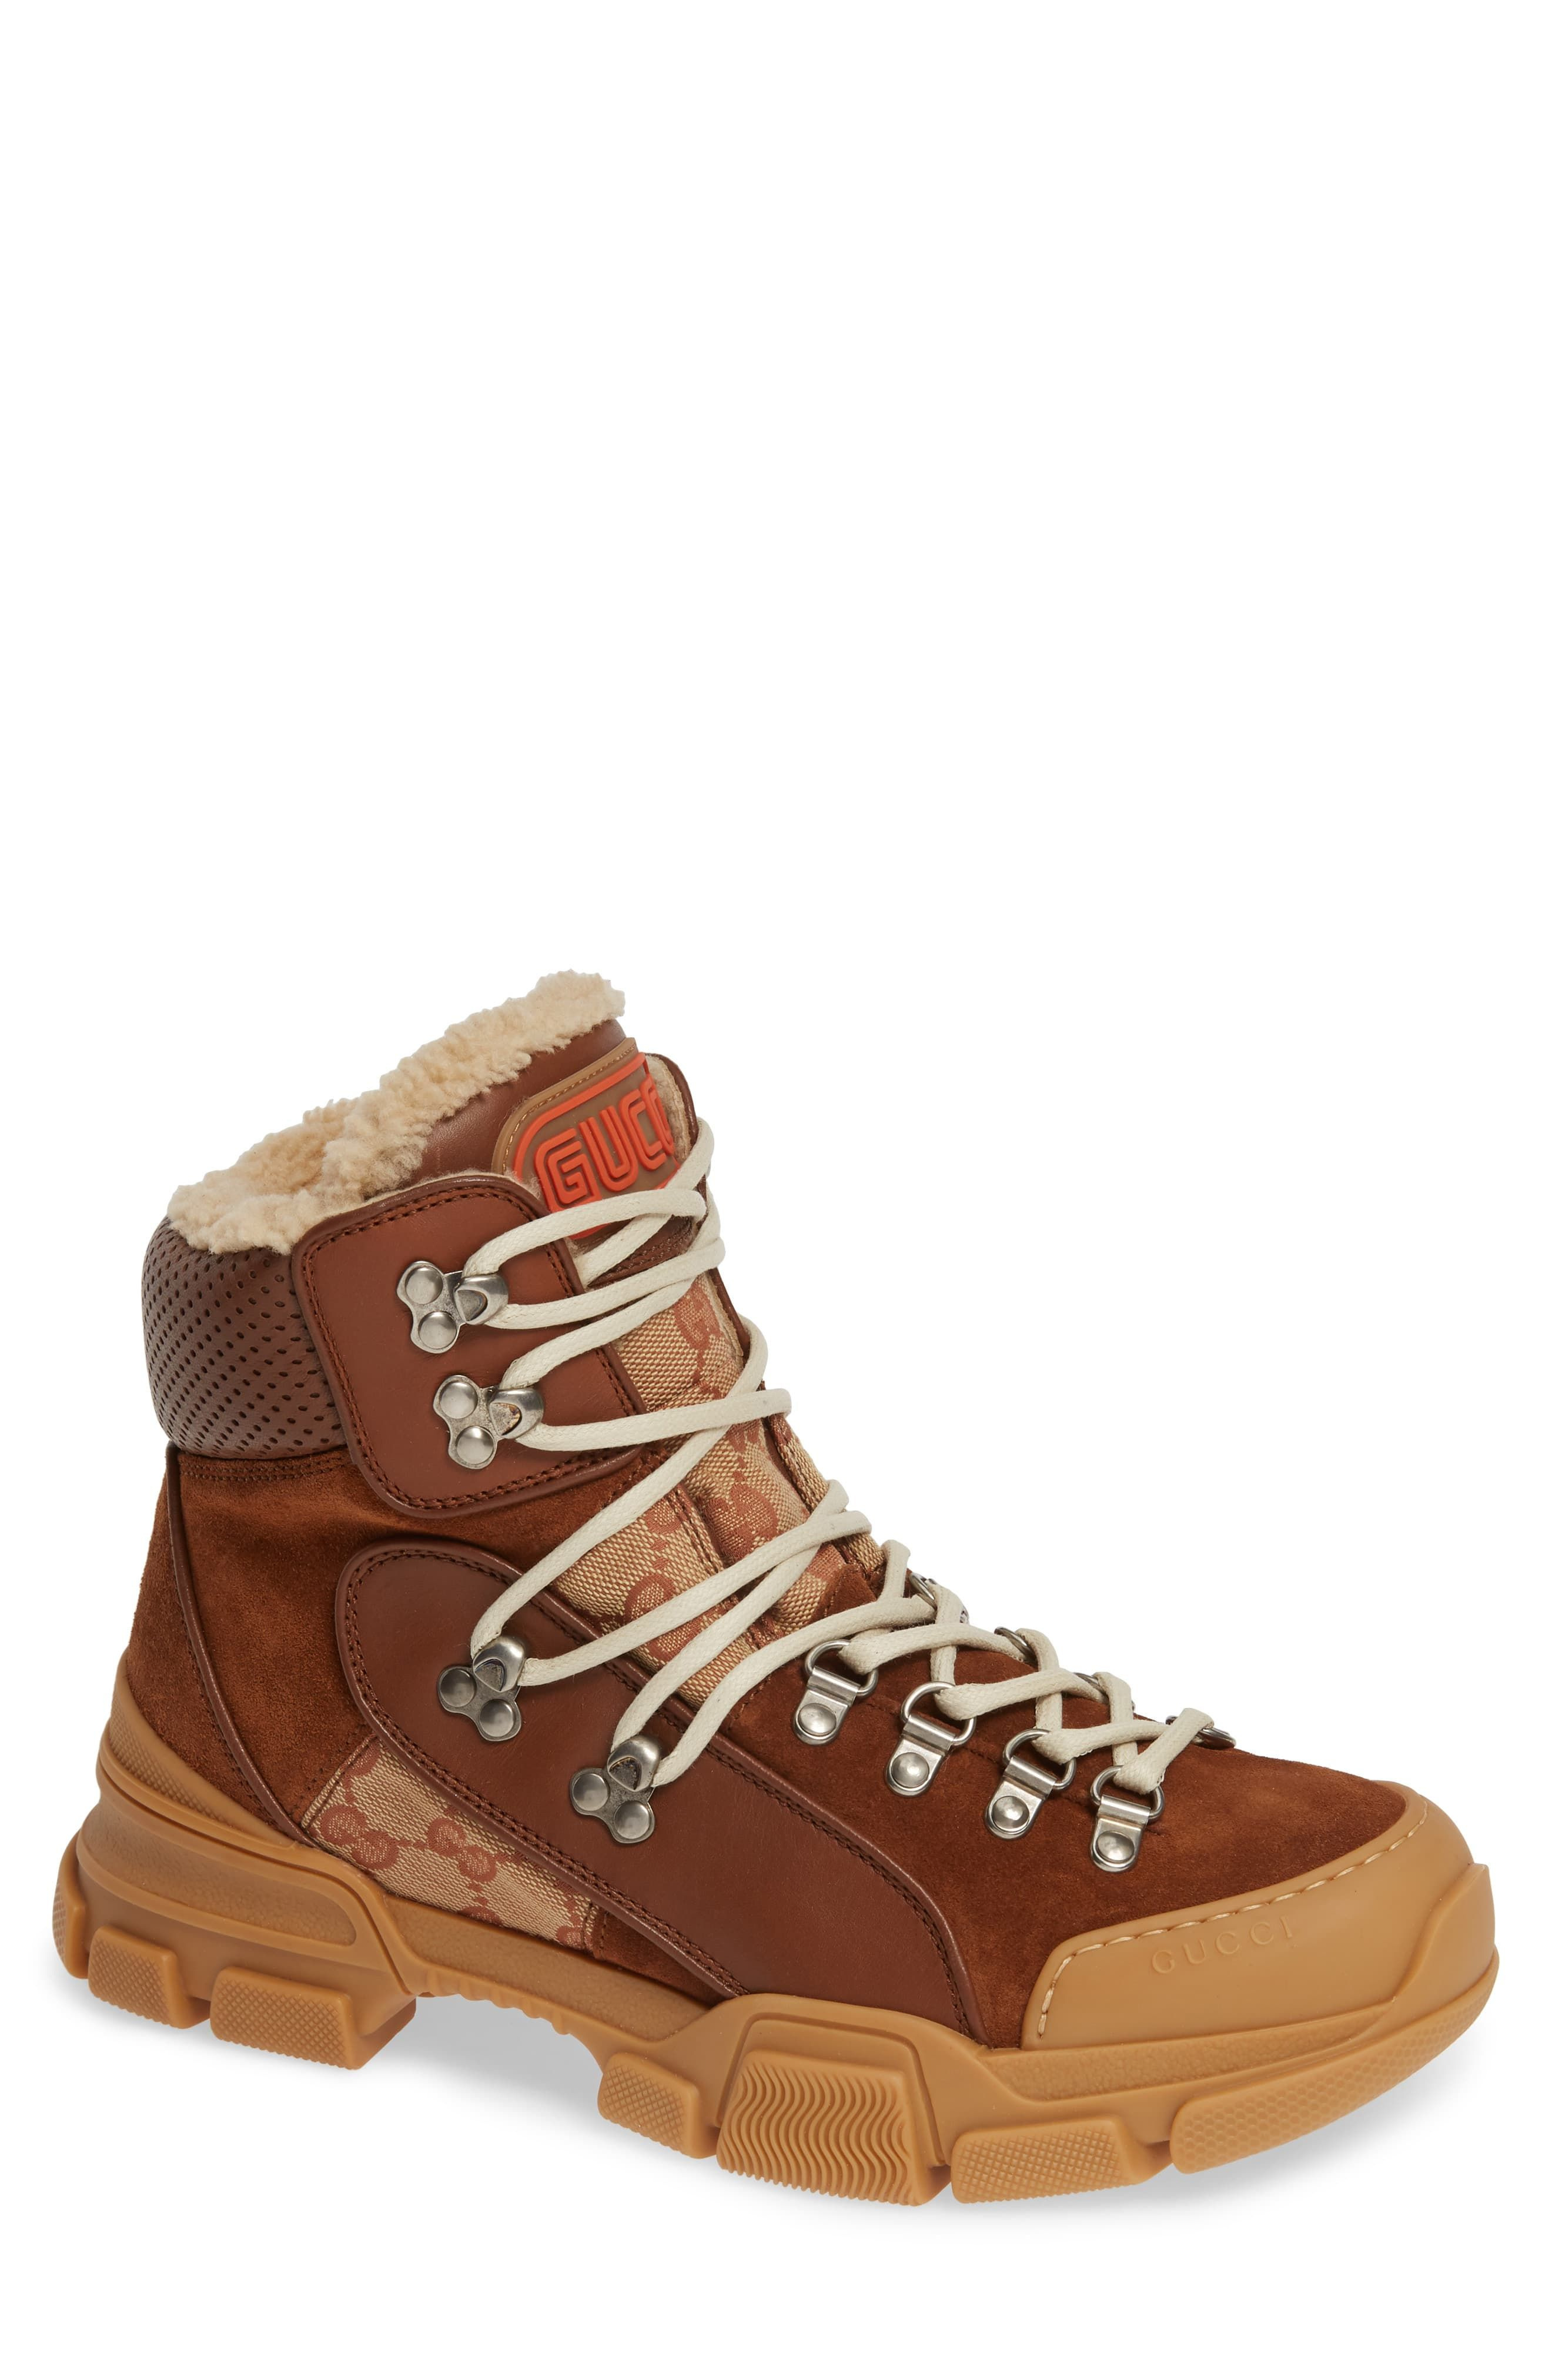 82a0f50c4d Men's Gucci Flashtrek Genuine Shearling Boot, Size 8.5US / 7.5UK ...